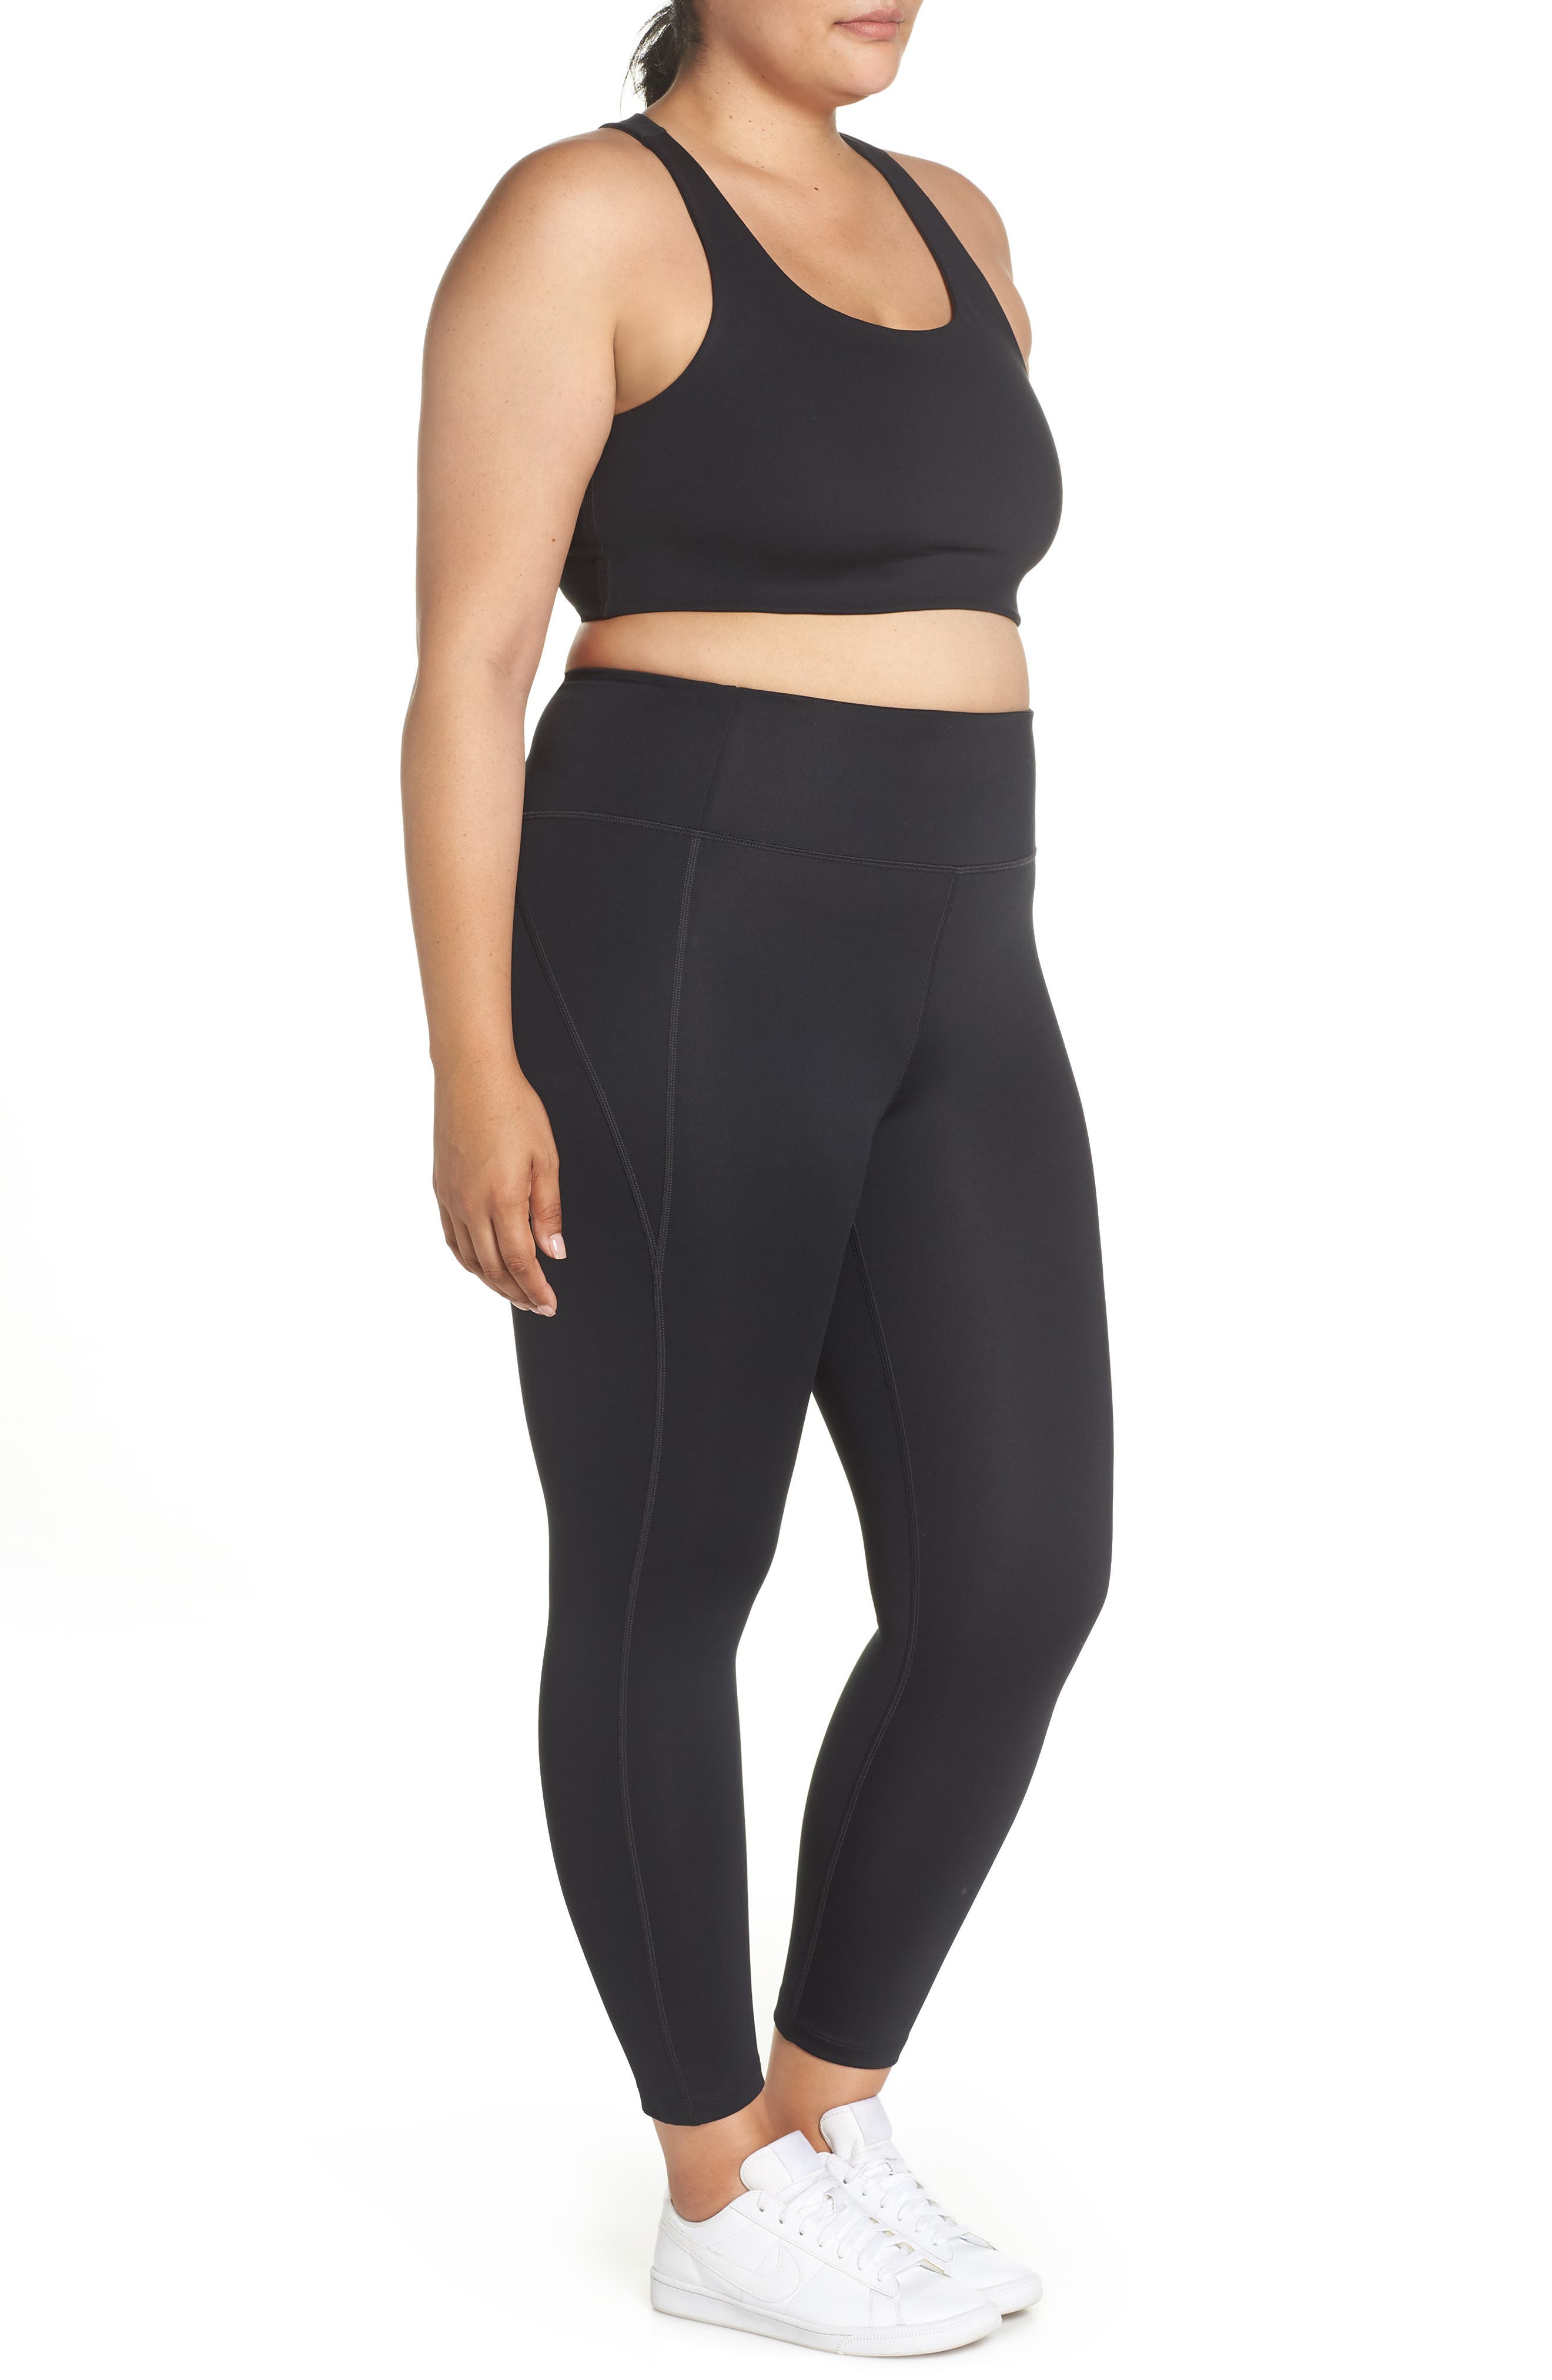 GIRLFRIEND COLLECTIVE, Cropped Paloma Sports Bra, Alternate thumbnail 16, color, 001